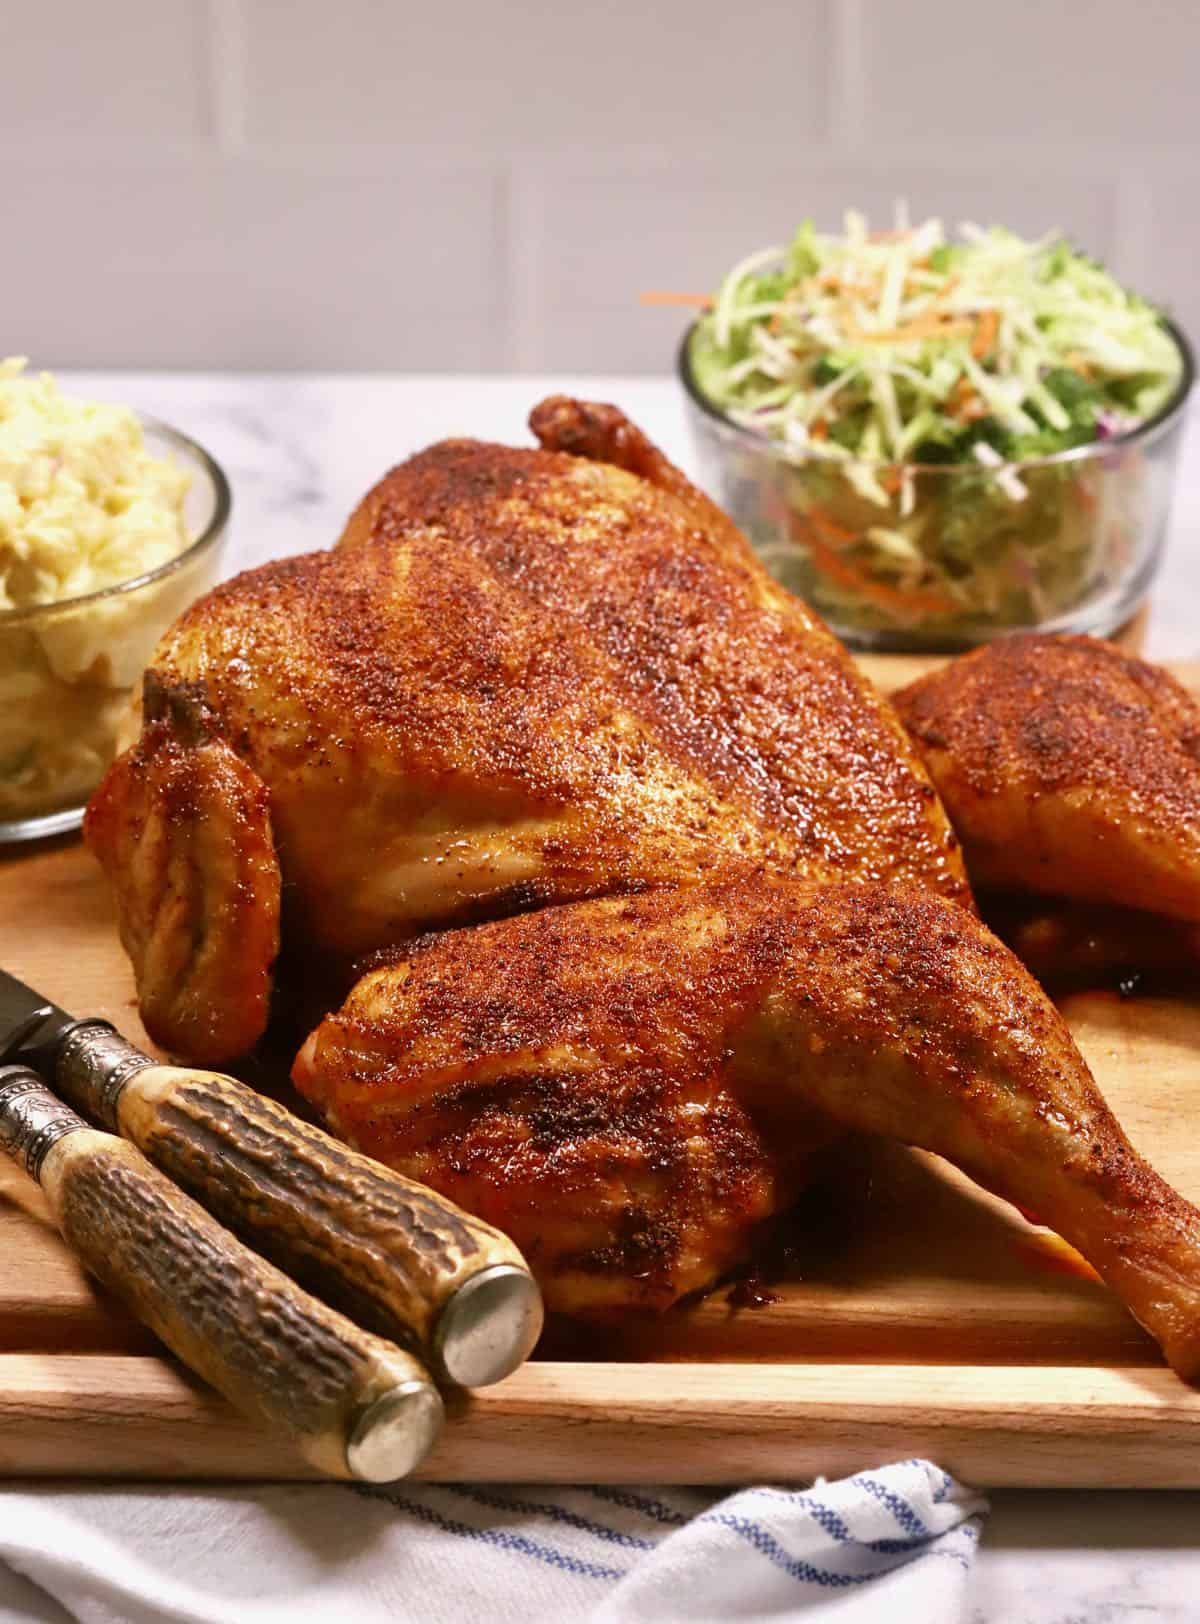 A smoked whole chicken on a cutting board.